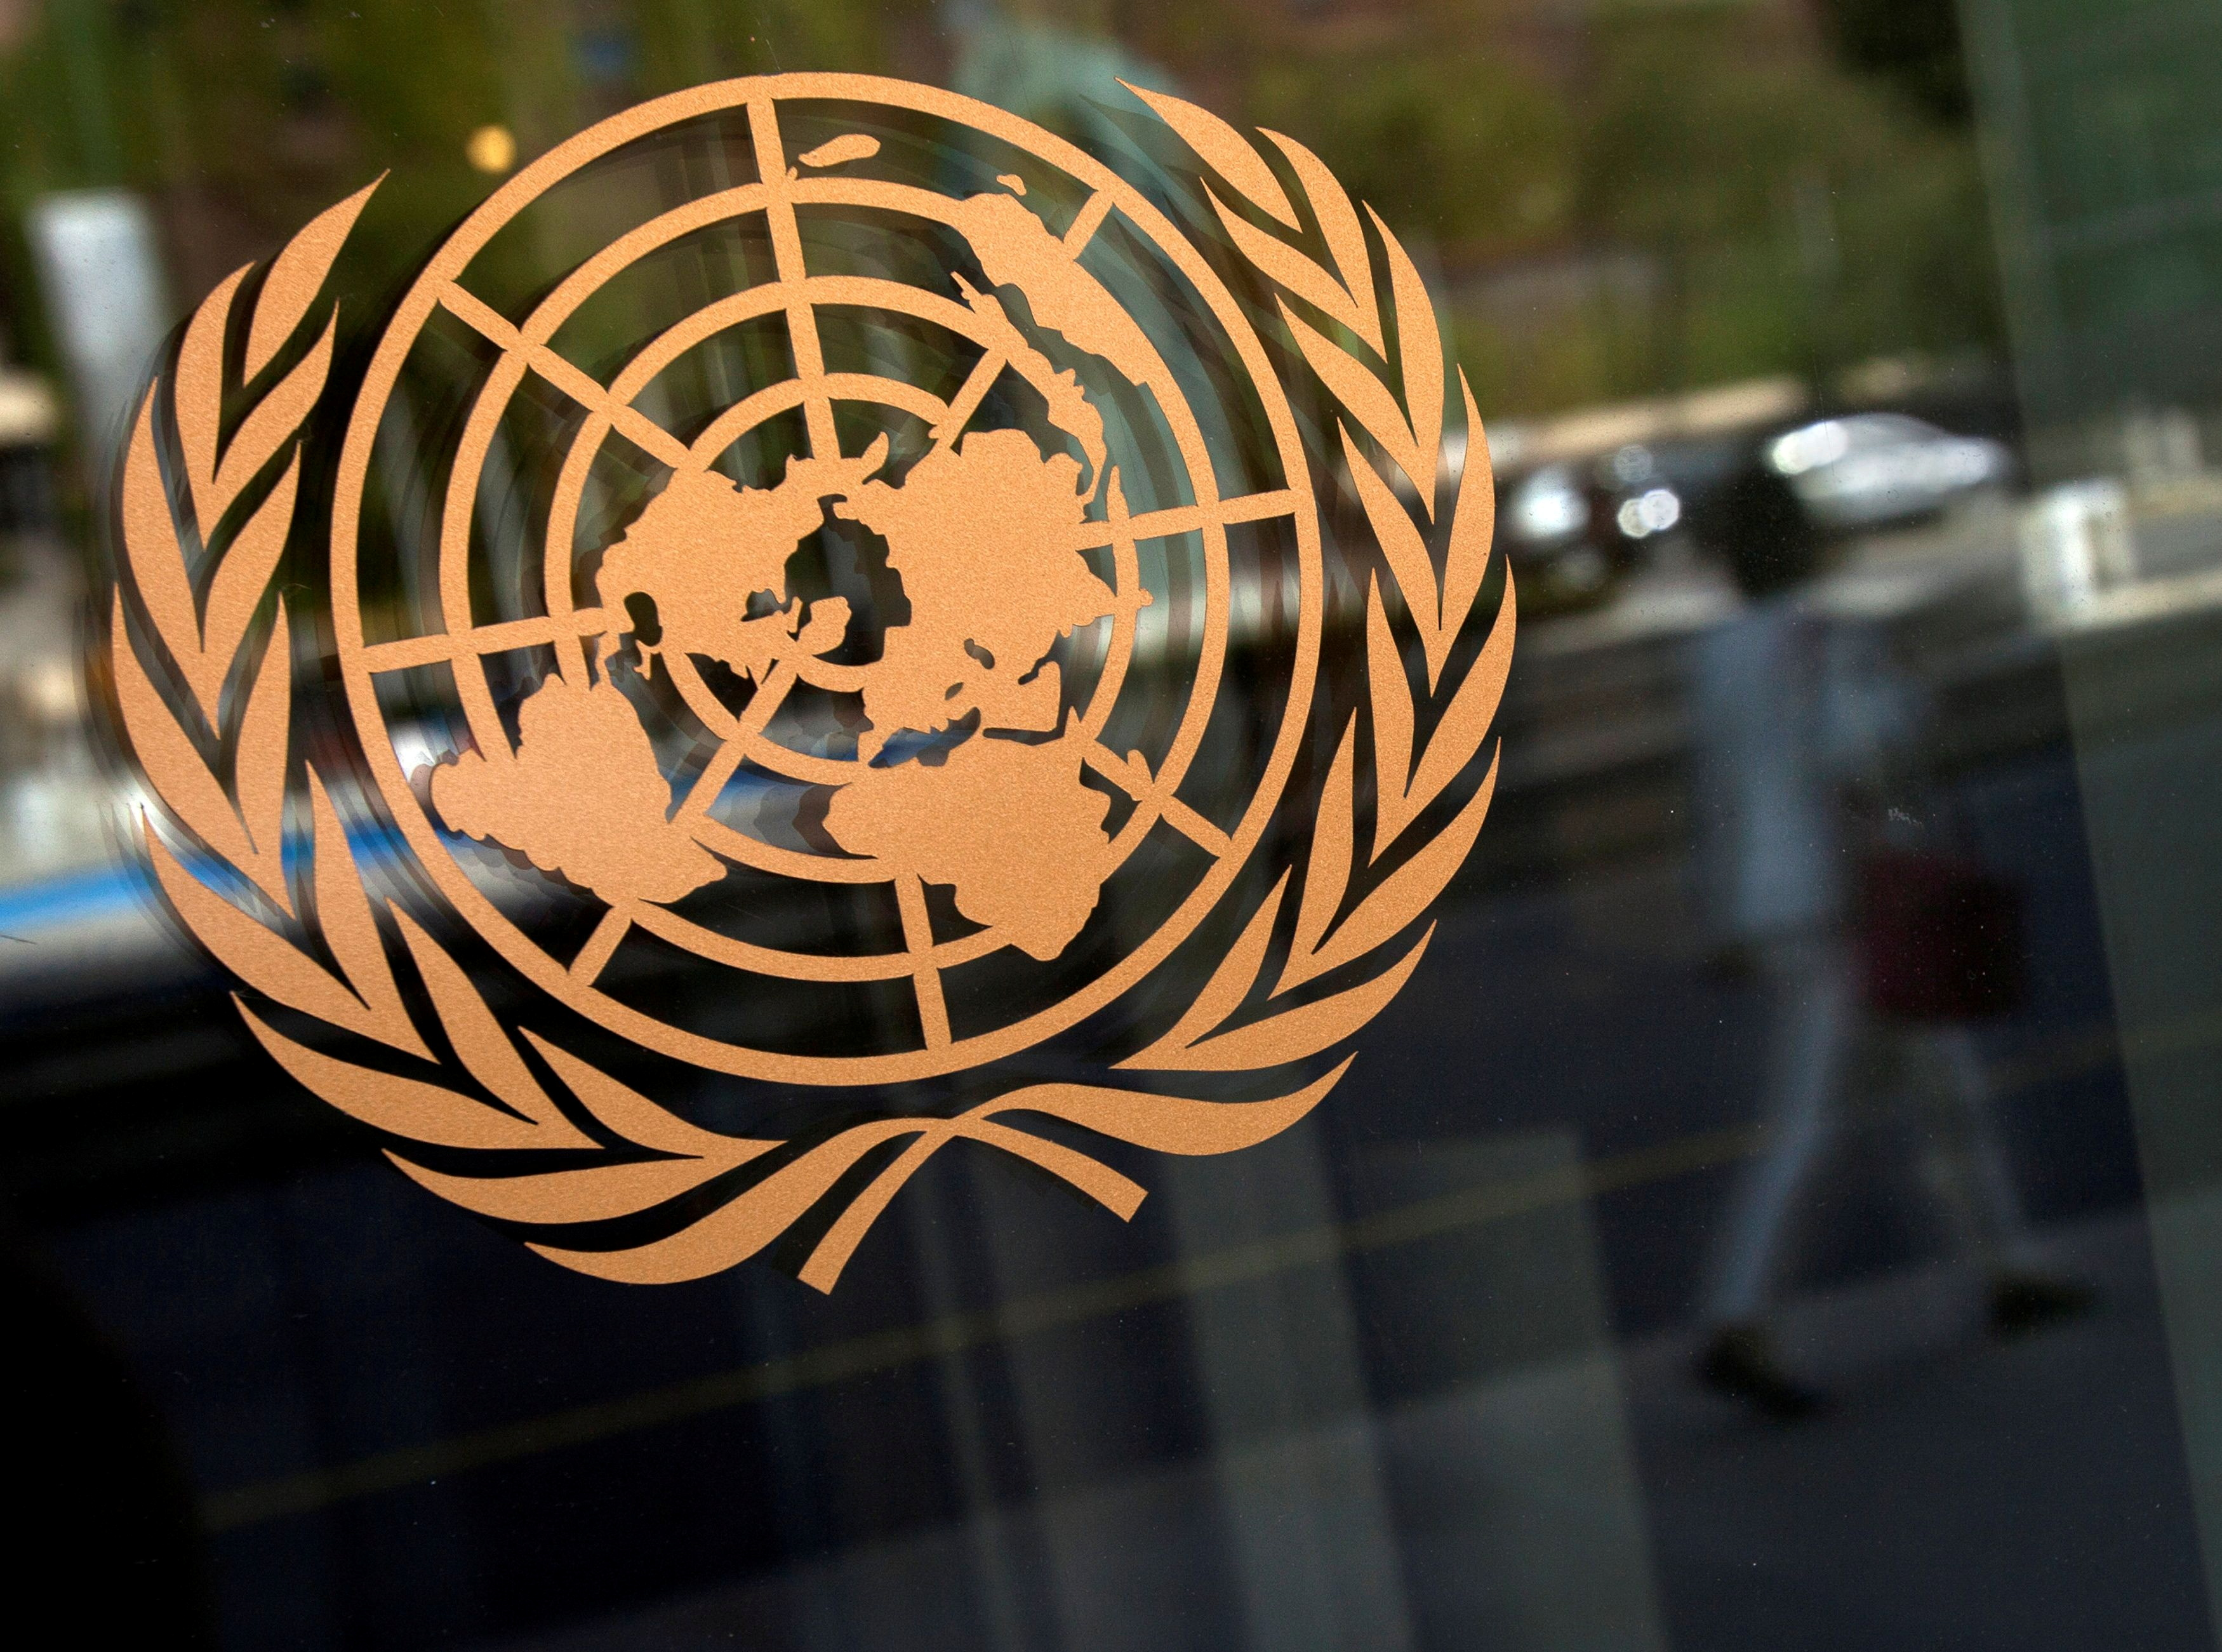 The logo of the United Nations is seen on the outside of the U.N. headquarters in New York, September 15, 2013.  REUTERS/Carlo Allegri